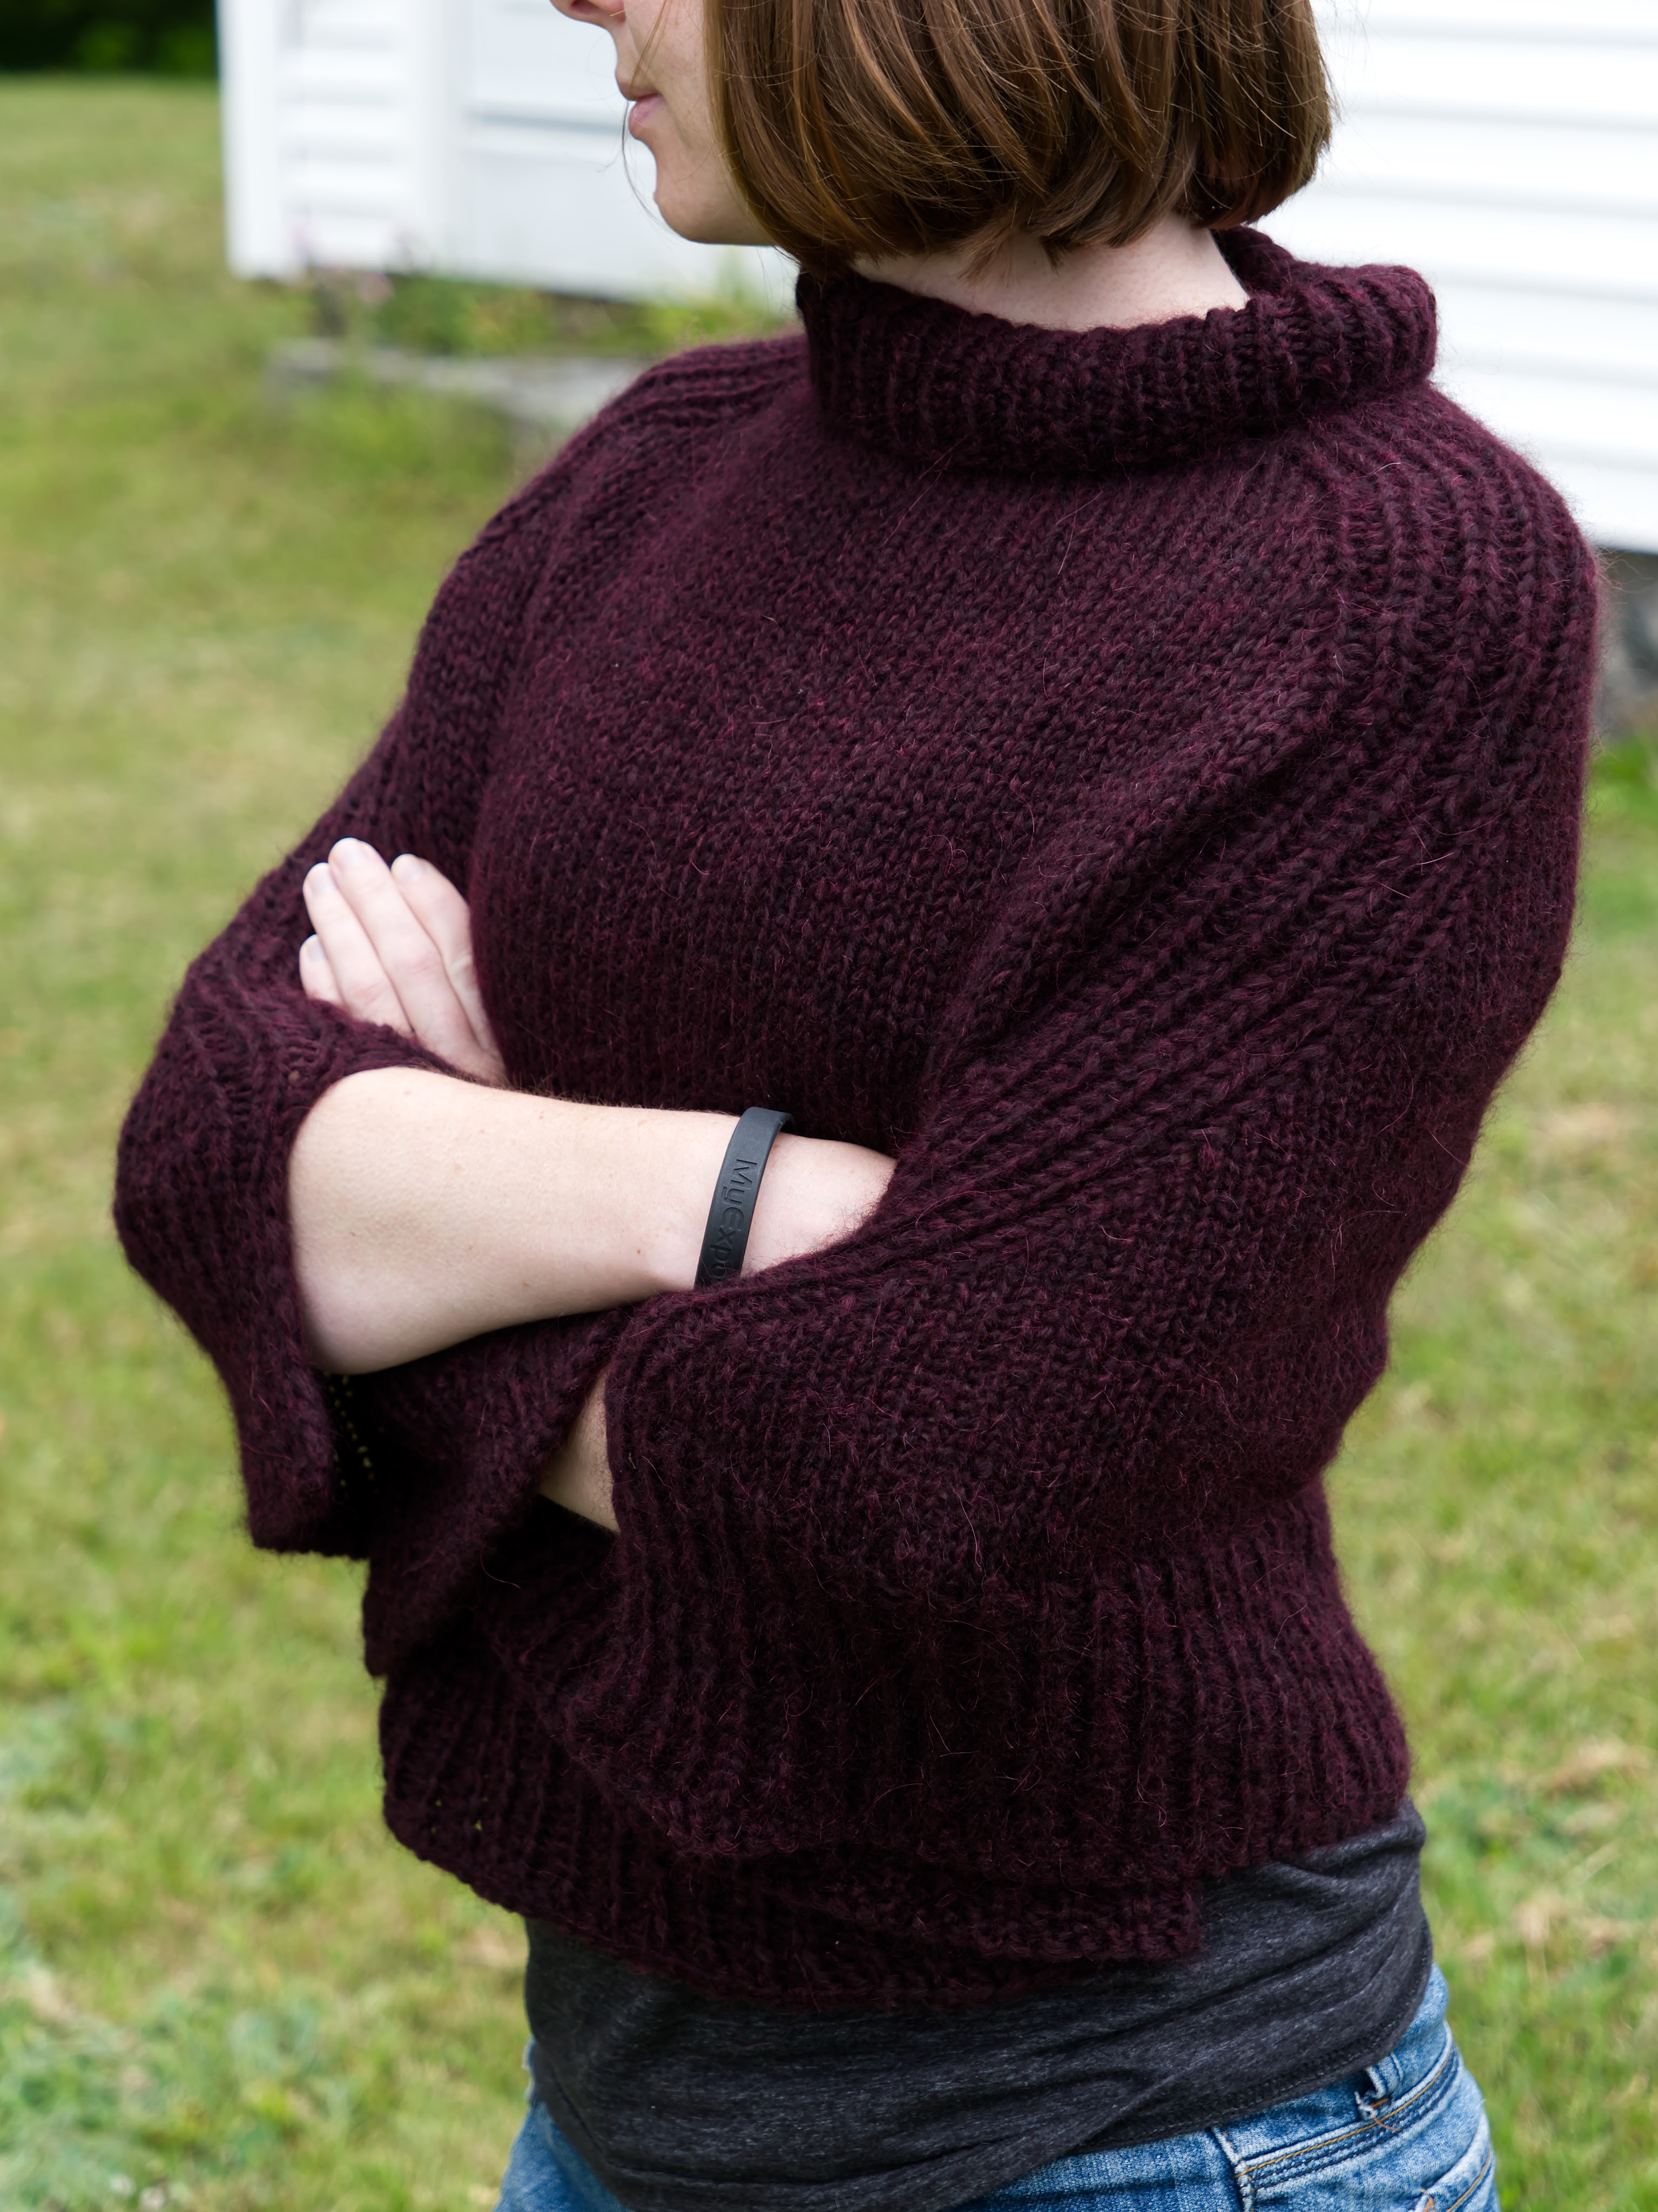 A young woman standing with her arms crossed wearing a plum handknit poncho.